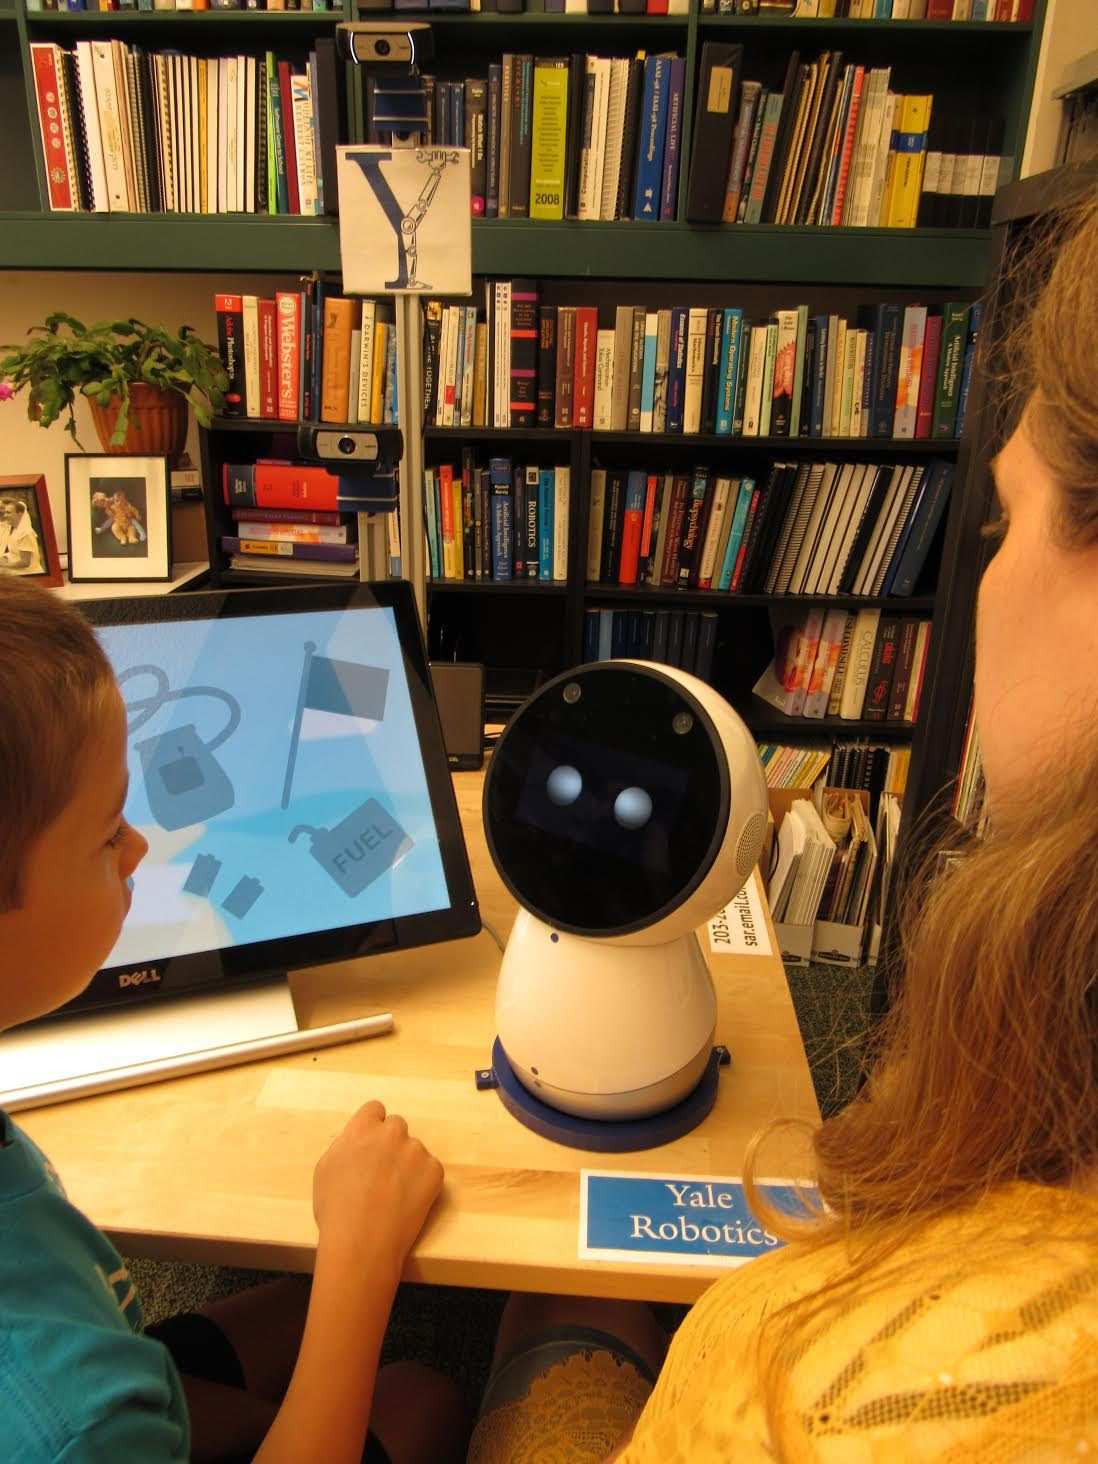 Robotic Role Models Show Therapeutic Promise